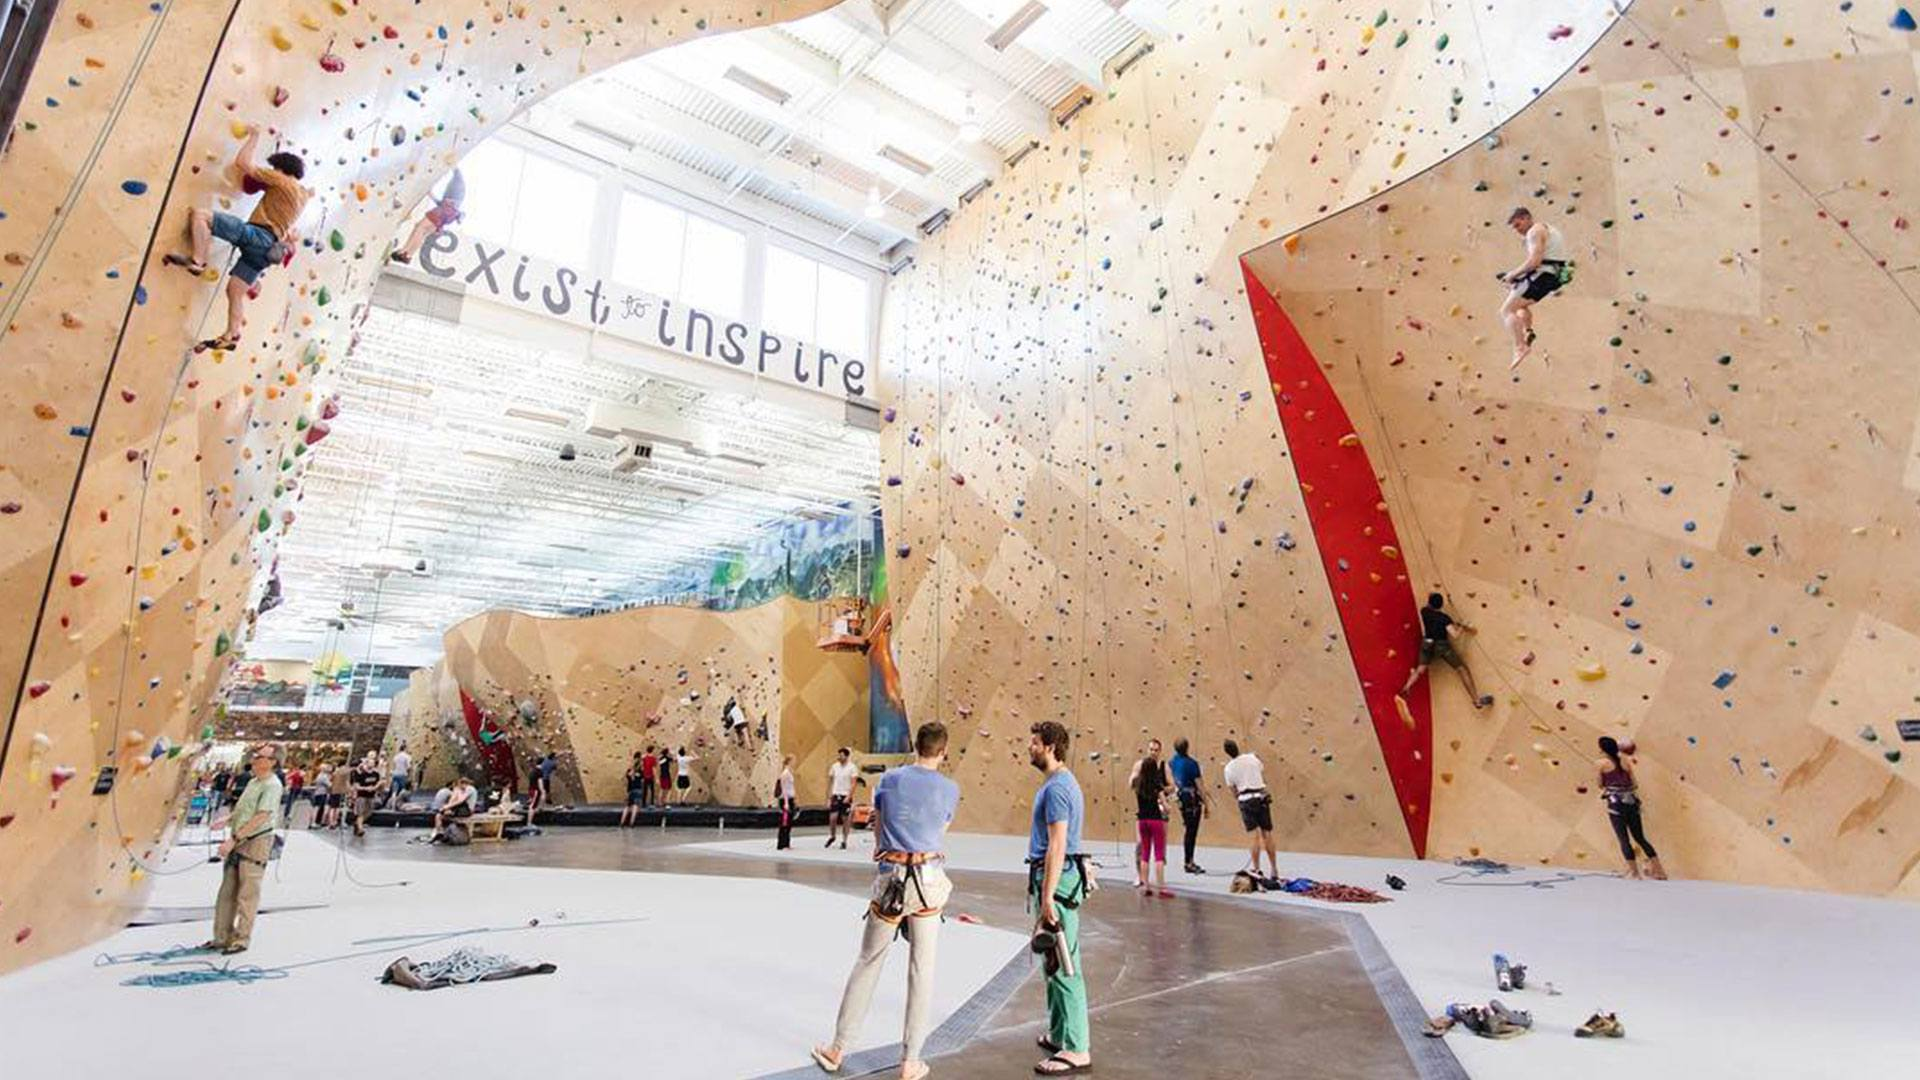 Brooklyn Boulders Queensbridge Facility